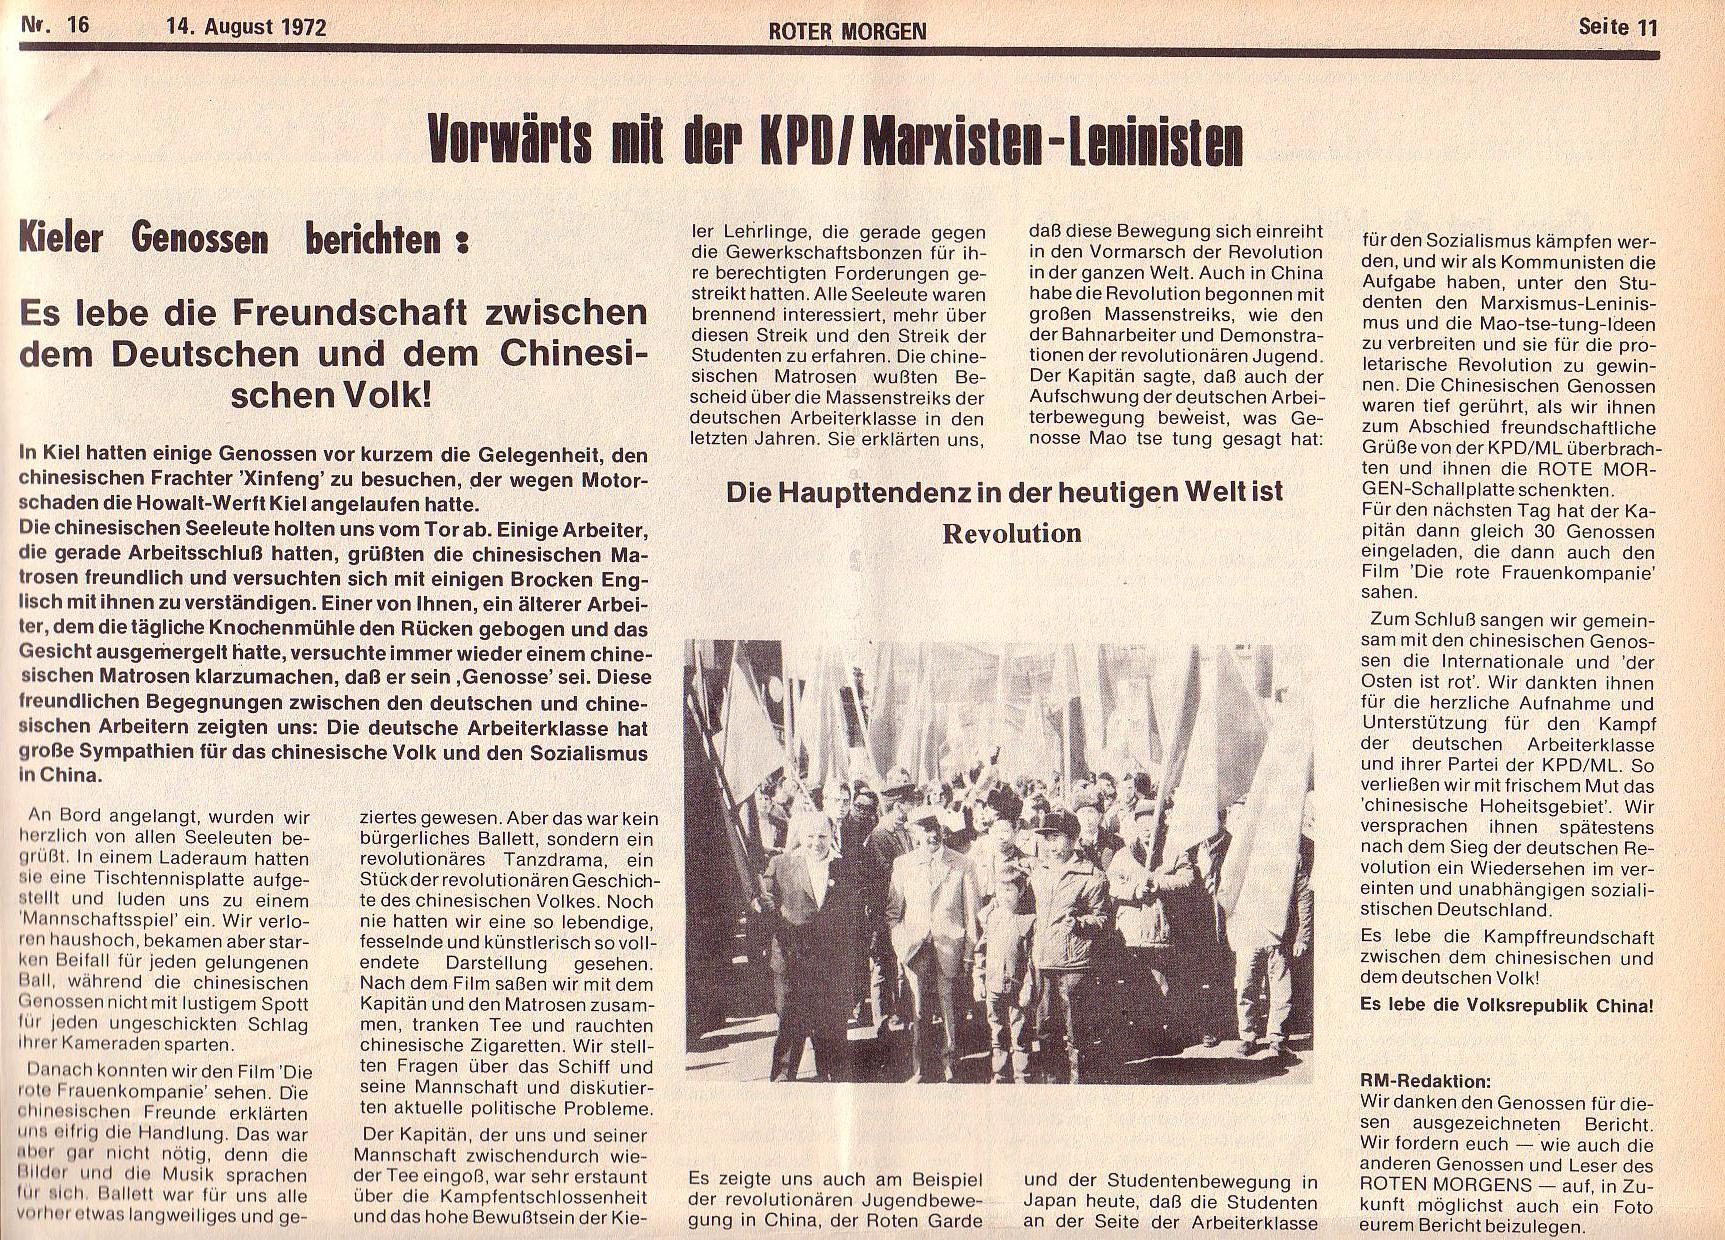 Roter Morgen, 6. Jg., 14. August 1972, Nr. 16, Seite 11a